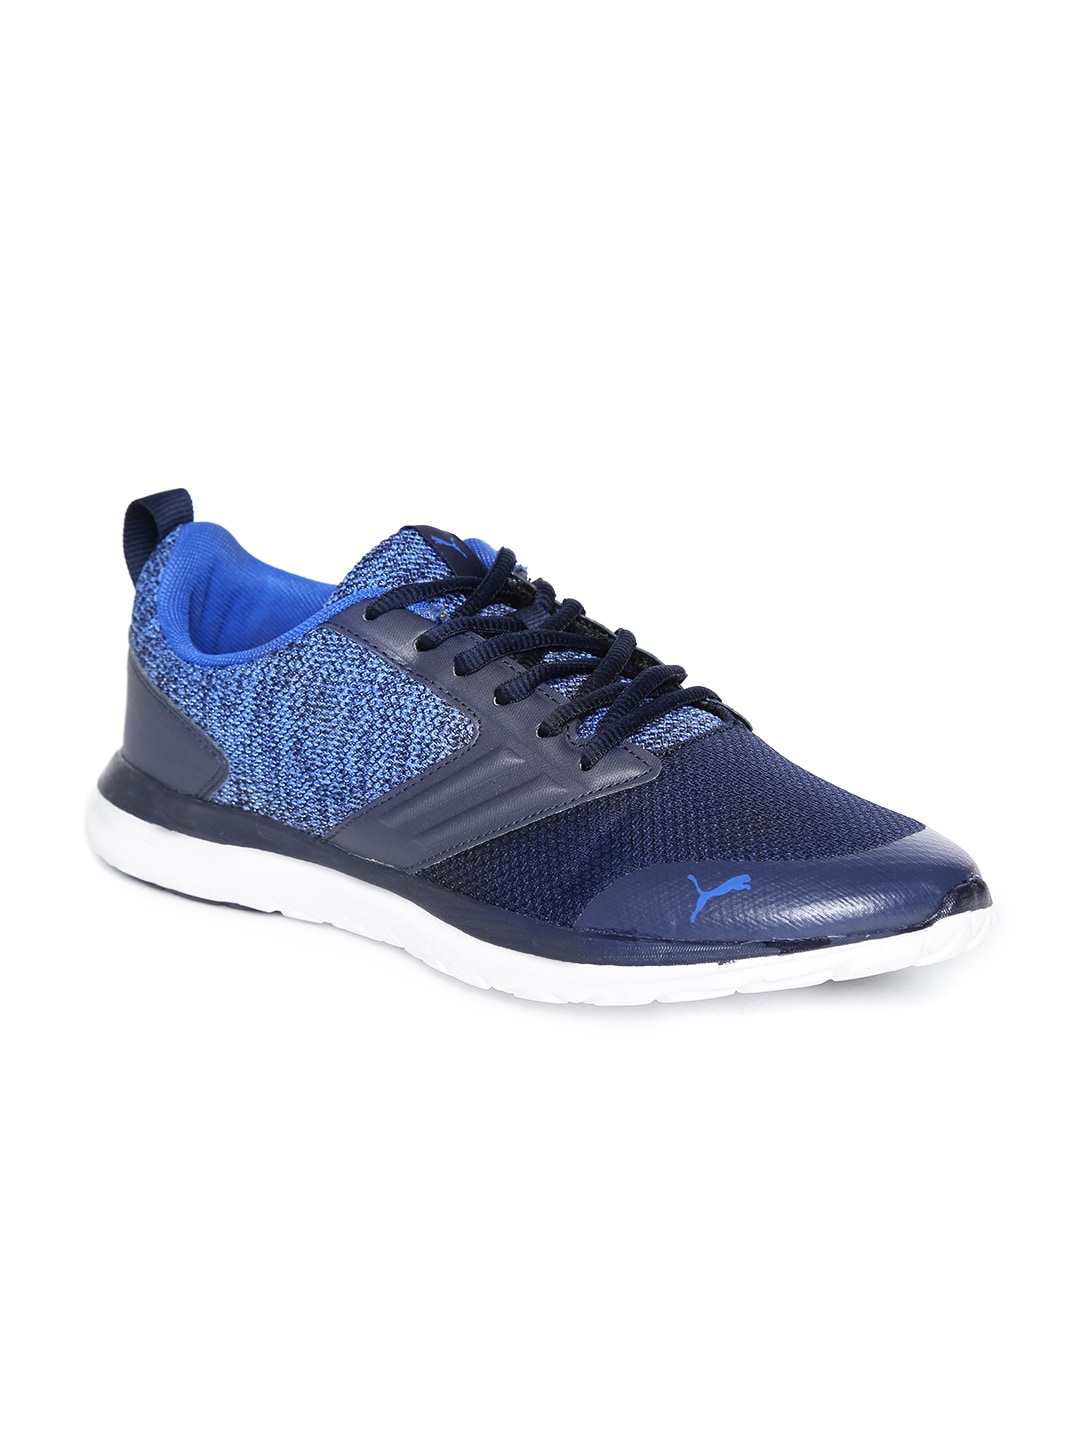 Puma Shoes - Buy Puma Shoes for Men   Women Online in India 27e41cc65